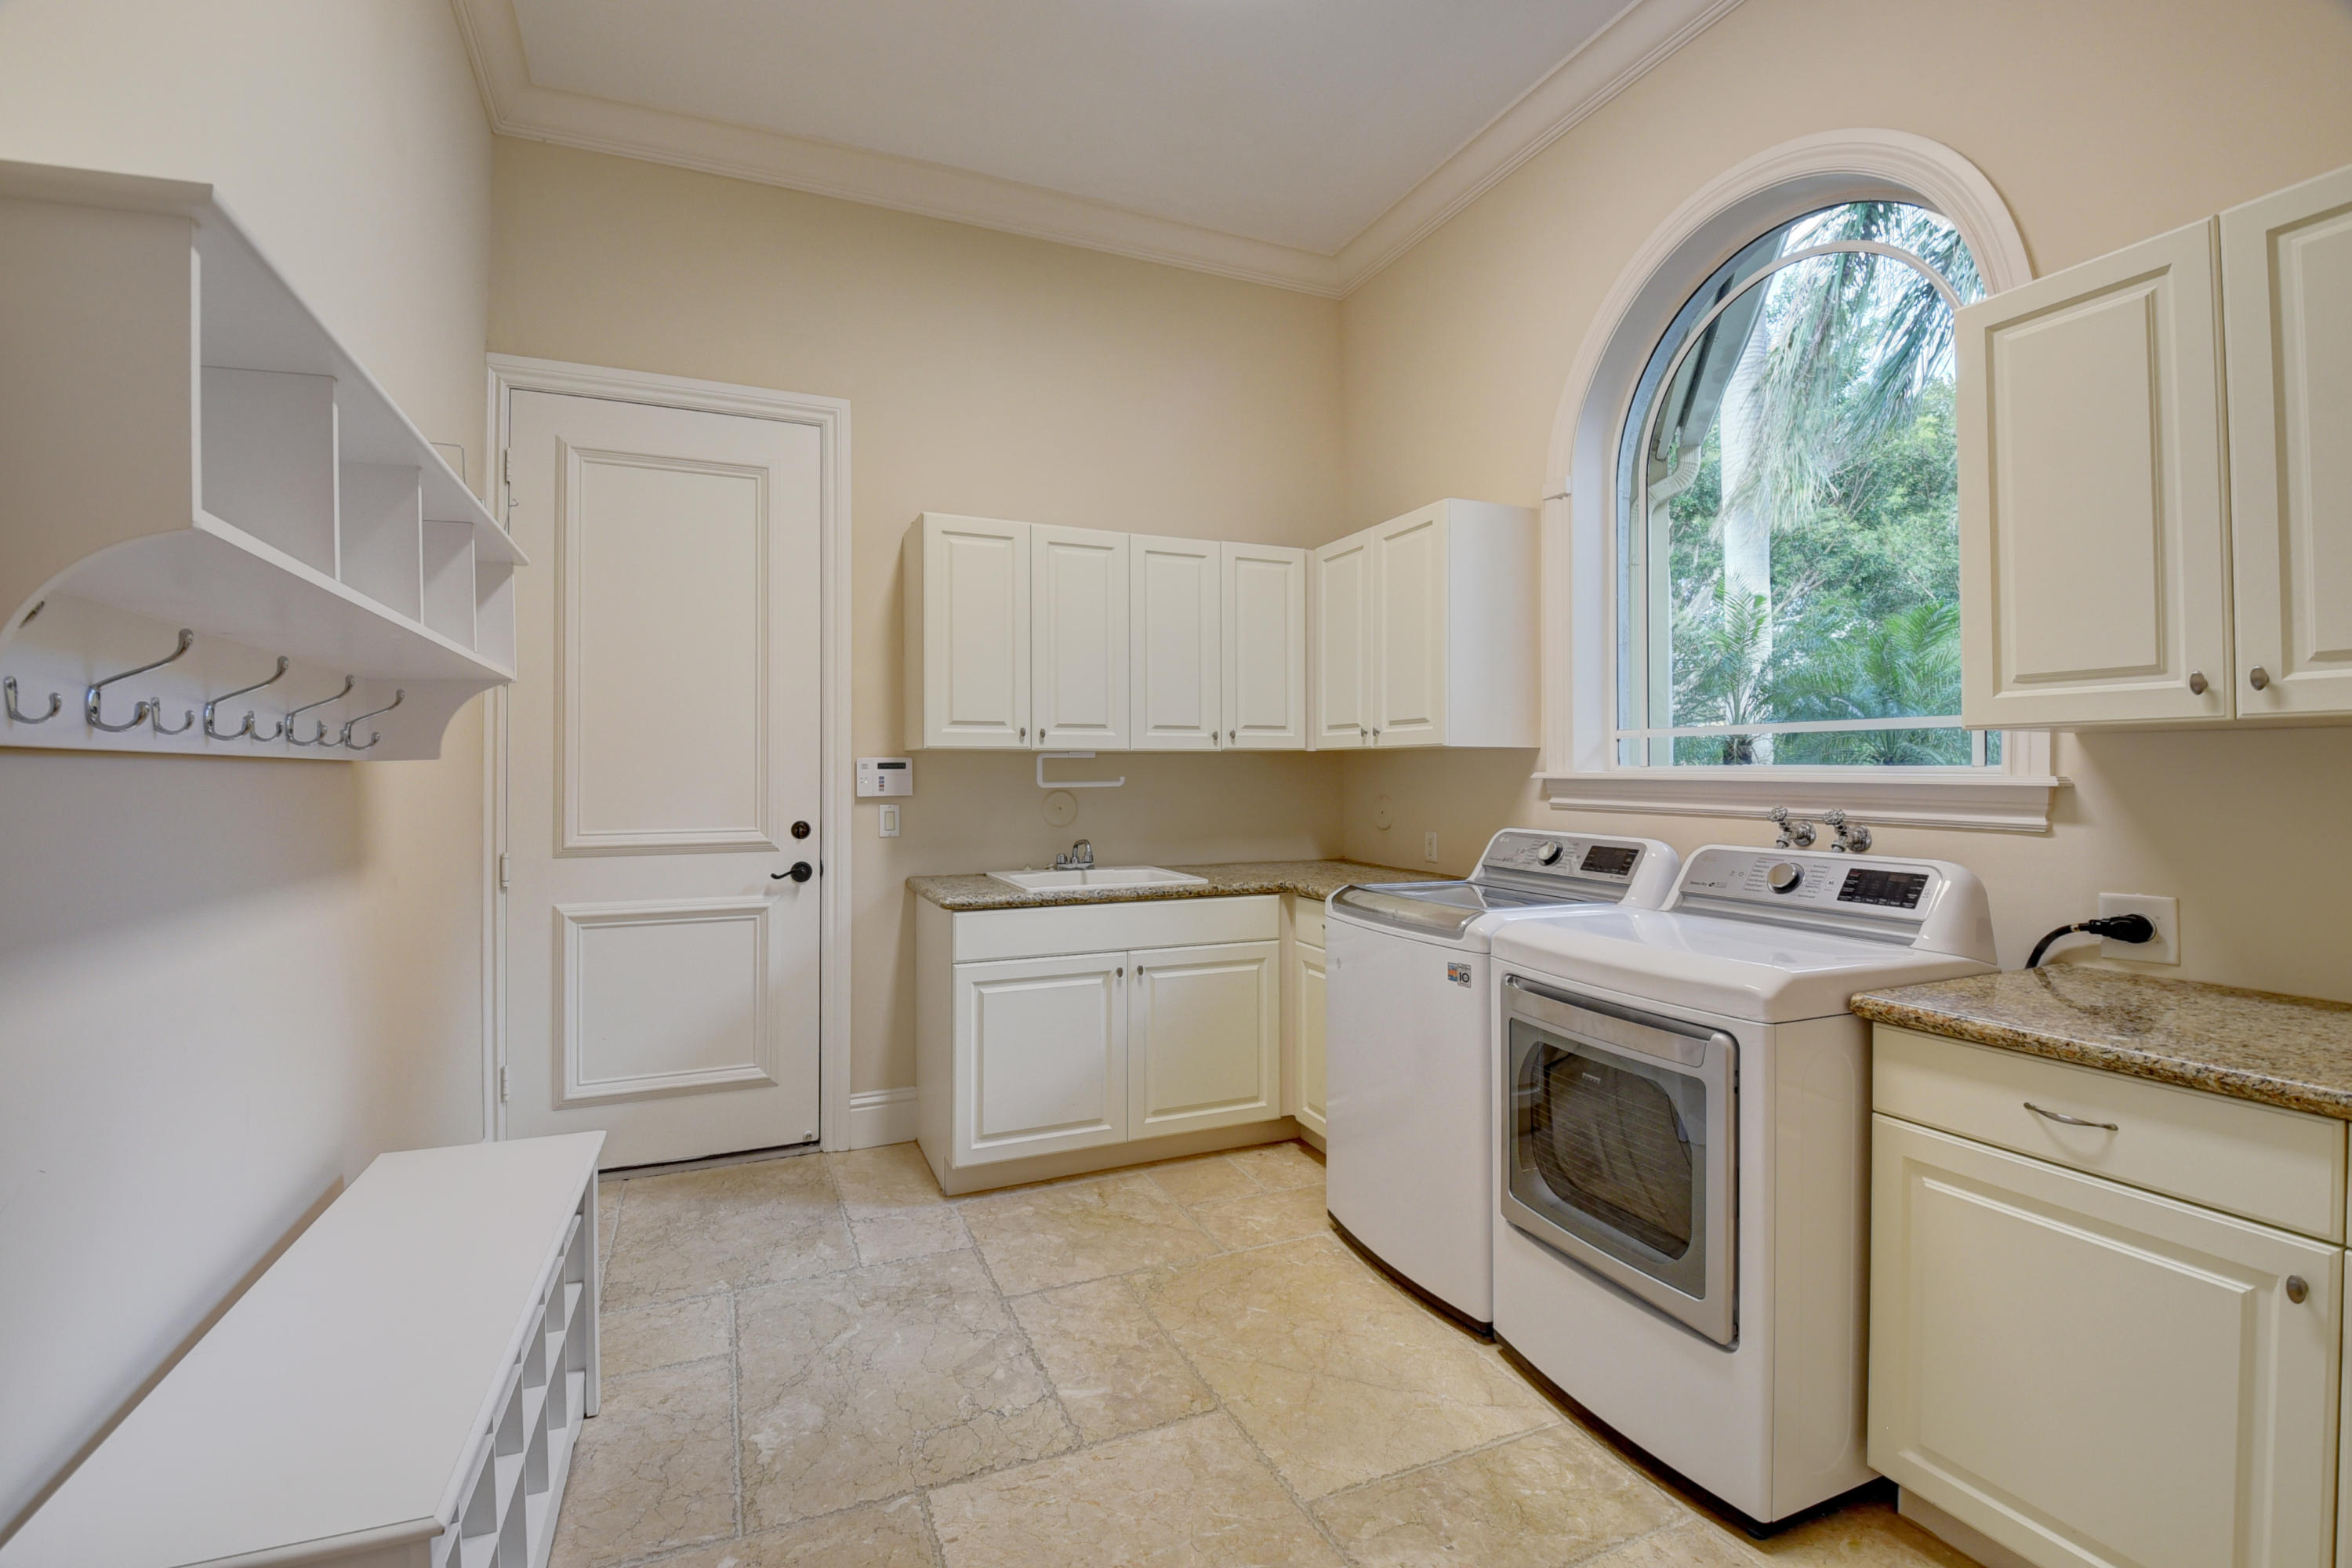 Pic - Laundry Room